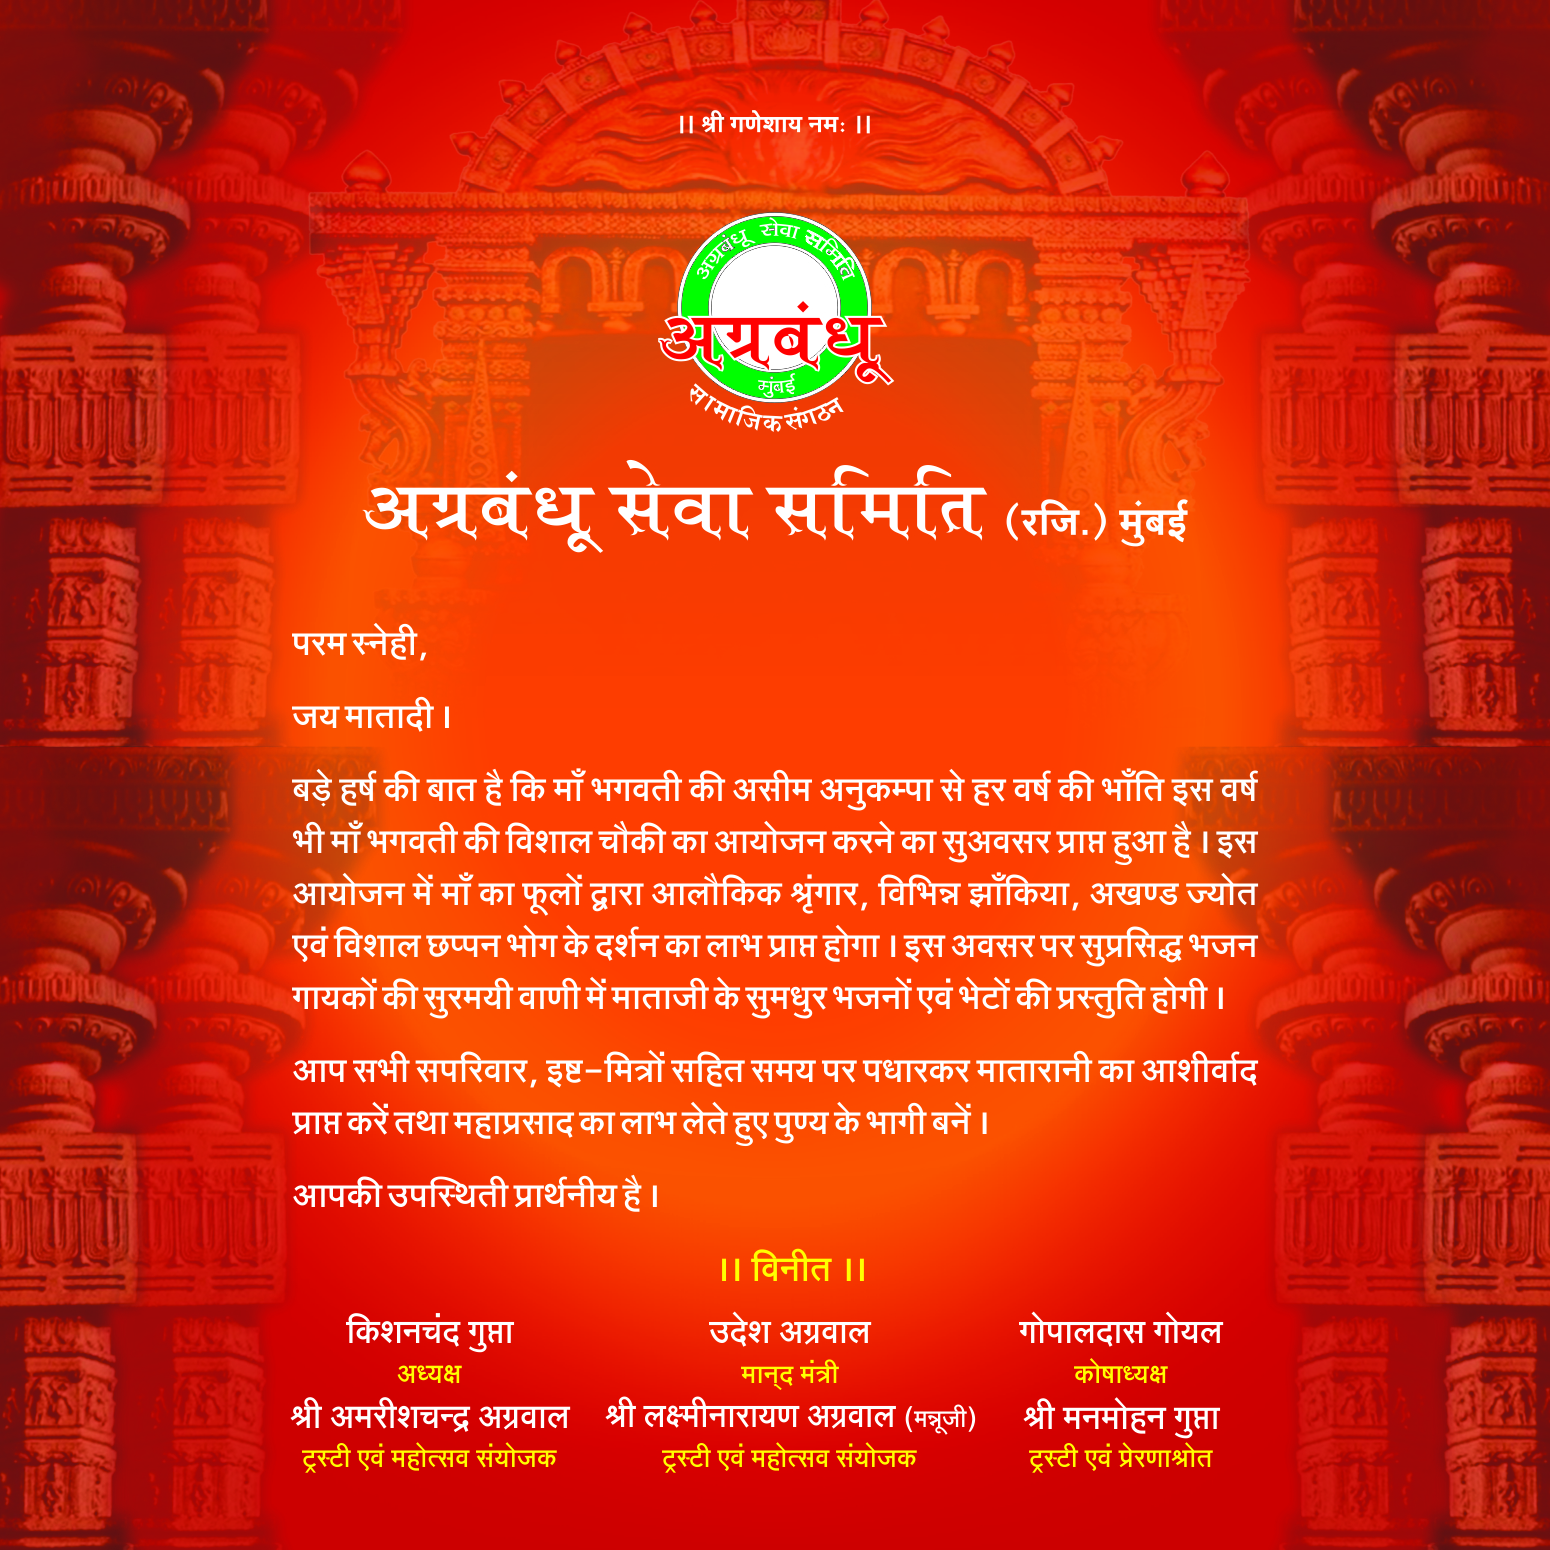 Mata ki chowki invitation card shrimad bhagwat katha invitation card bhagwat katha card ram katha card katha invitation stopboris Image collections